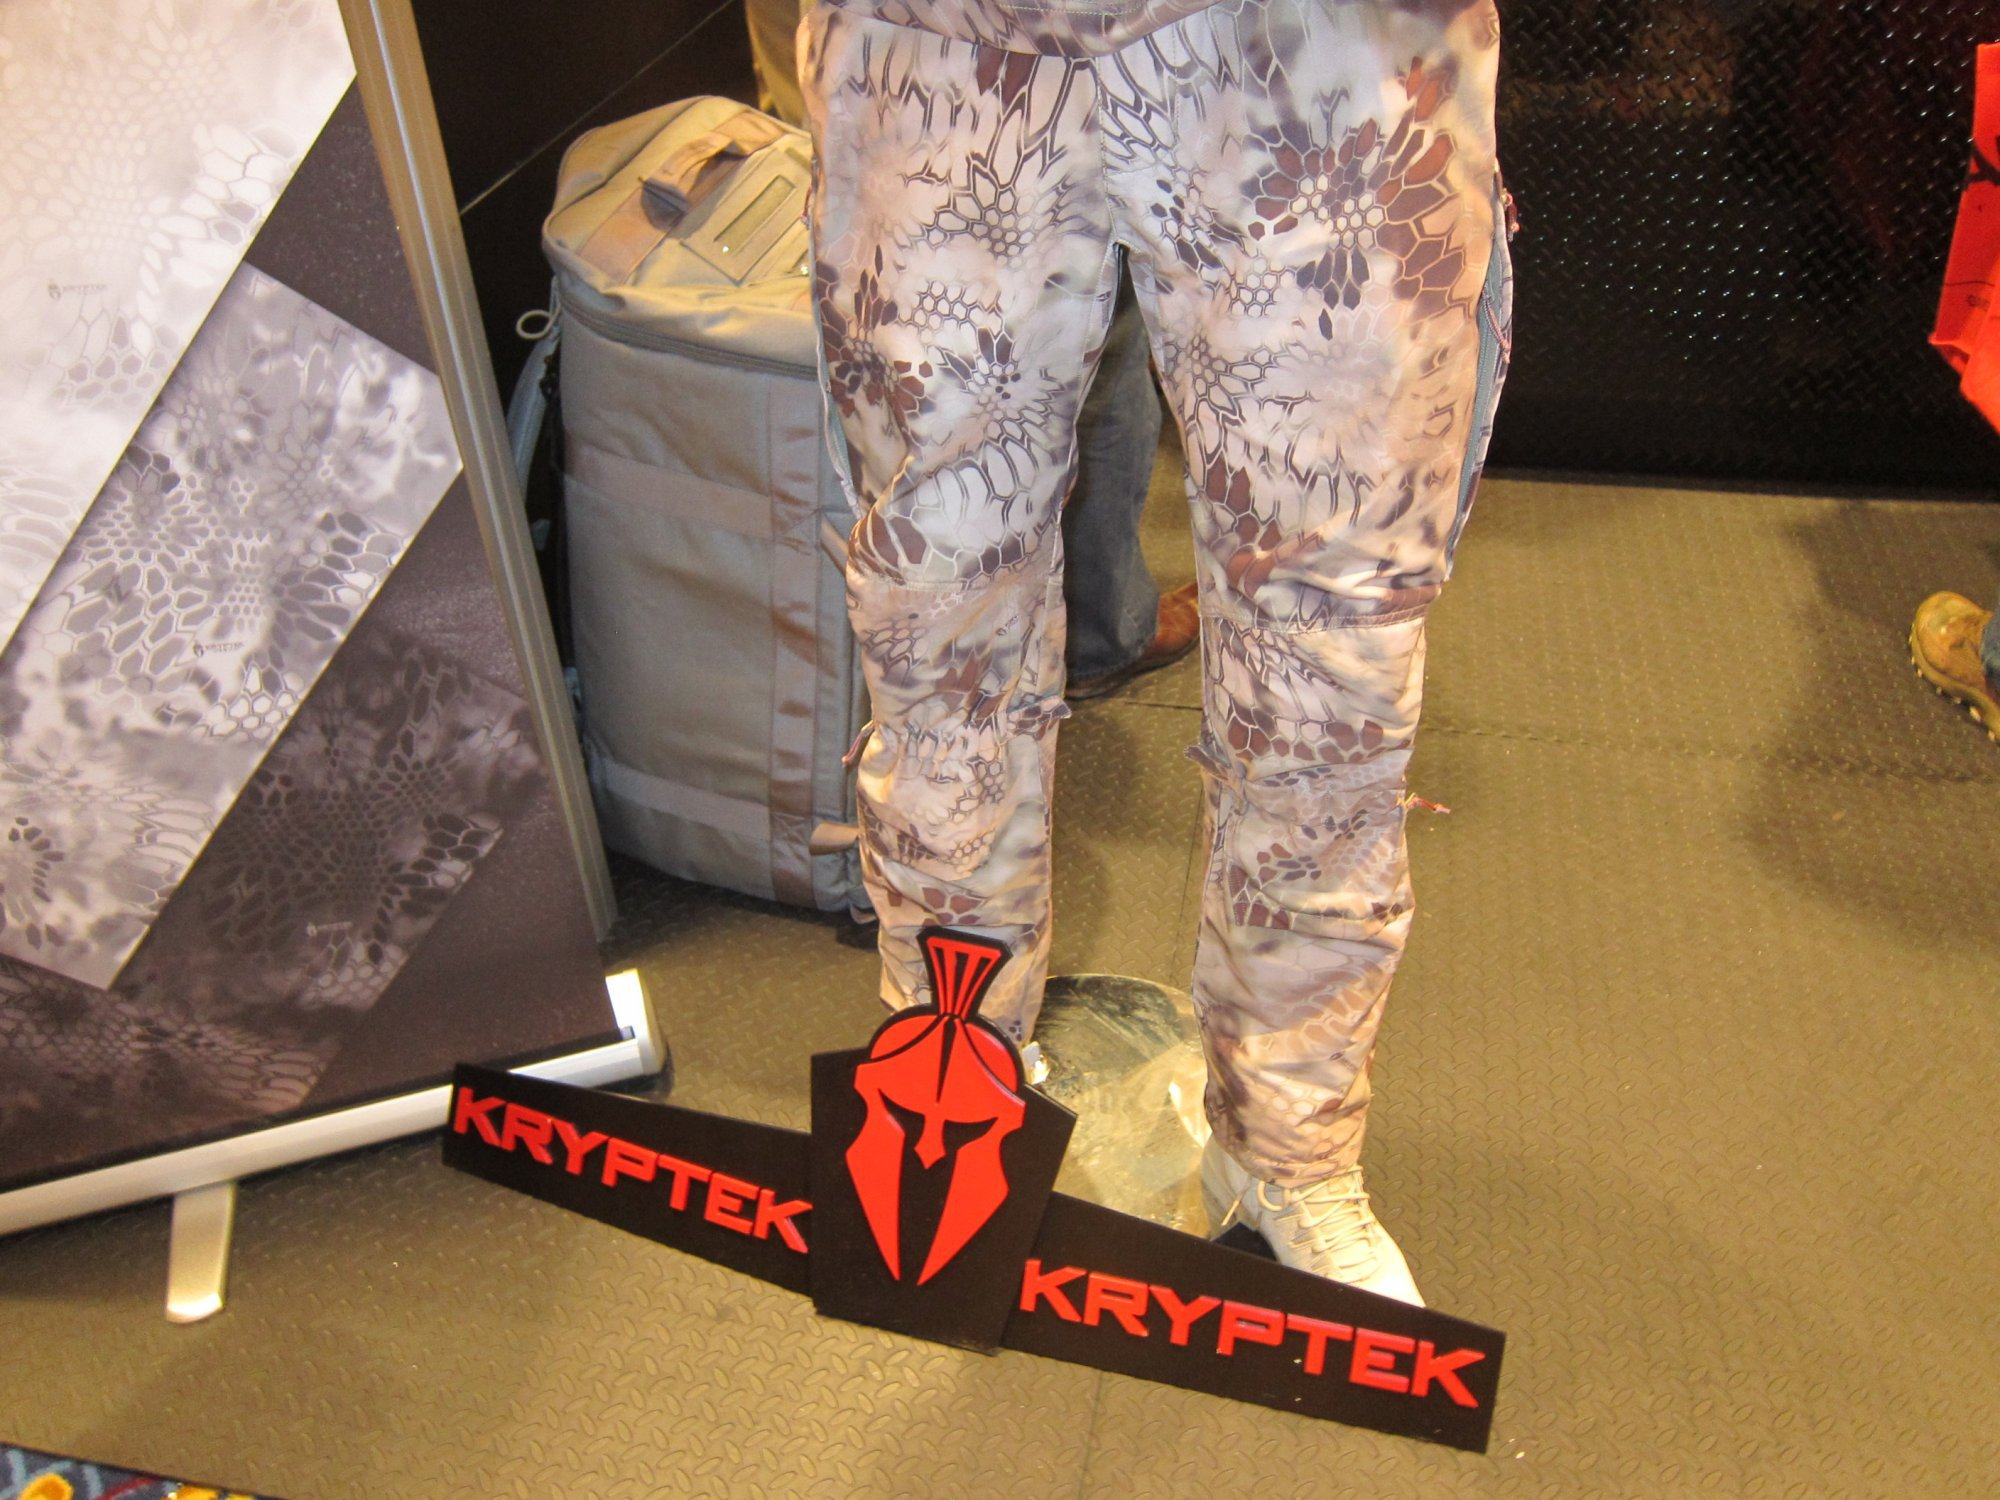 KRYPTEK LEAF Combat Camouflage Source One Distributing SOD Booth SHOT Show 2012 1 18 2012 DefenseReview.com DR 3 Kryptek LEAF/Camo Technologies 3 Dimensional (3 D)/Multi Directional Biomimetic Military Combat Camouflage (Camo) Patterns at SHOT Show 2012: Is the Armys Future Soldier Going Reptilian? (Video!)